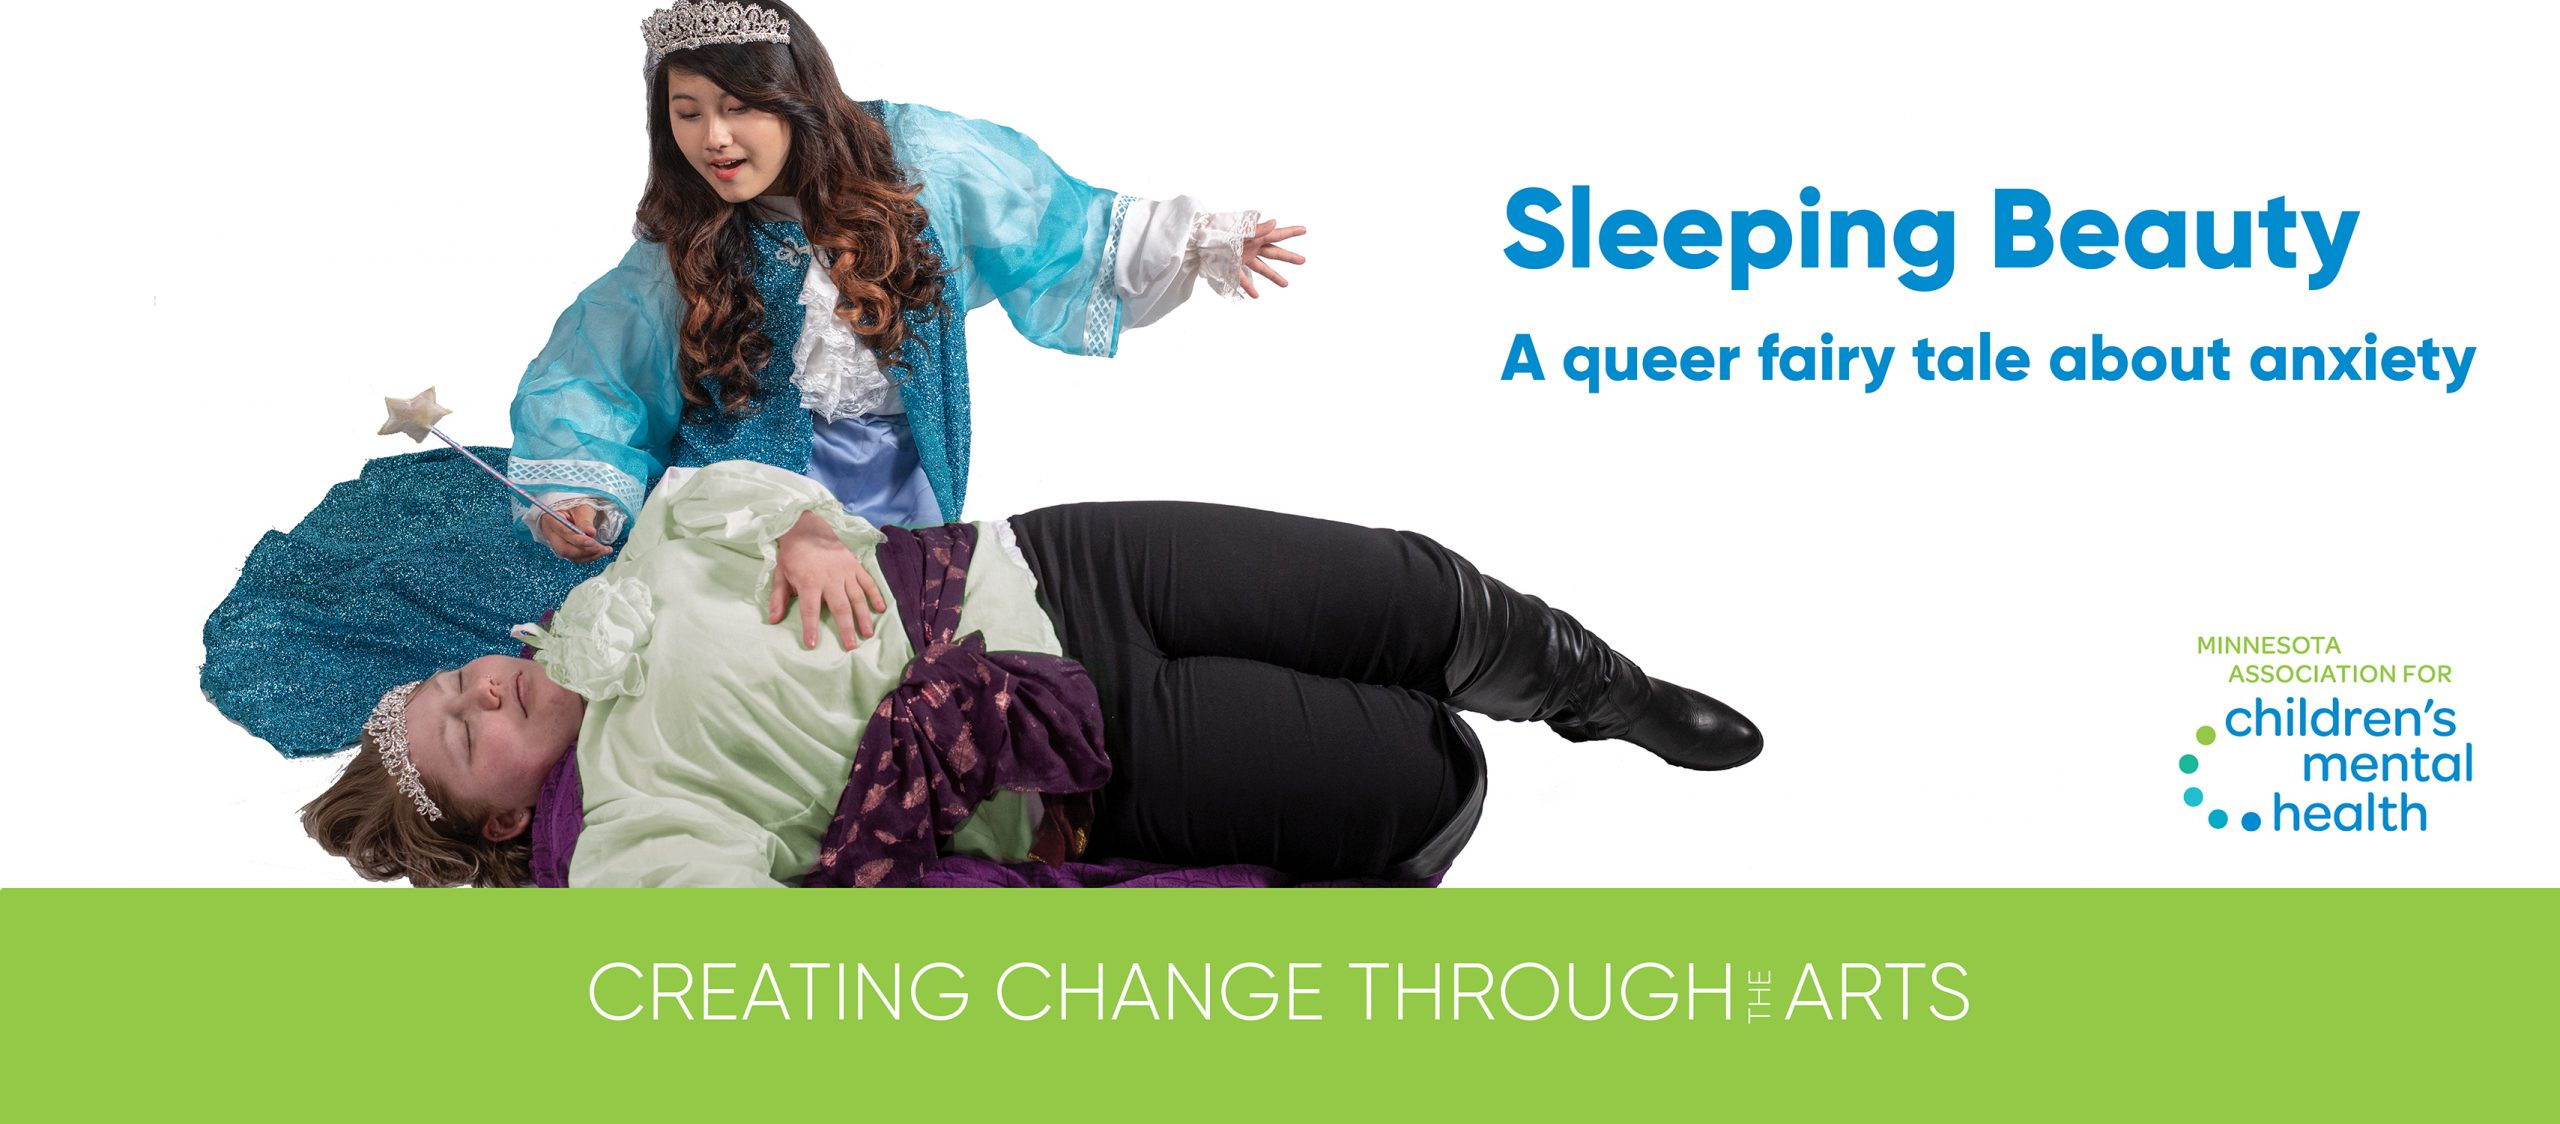 LGBTQ Slide Sleeping Beauty